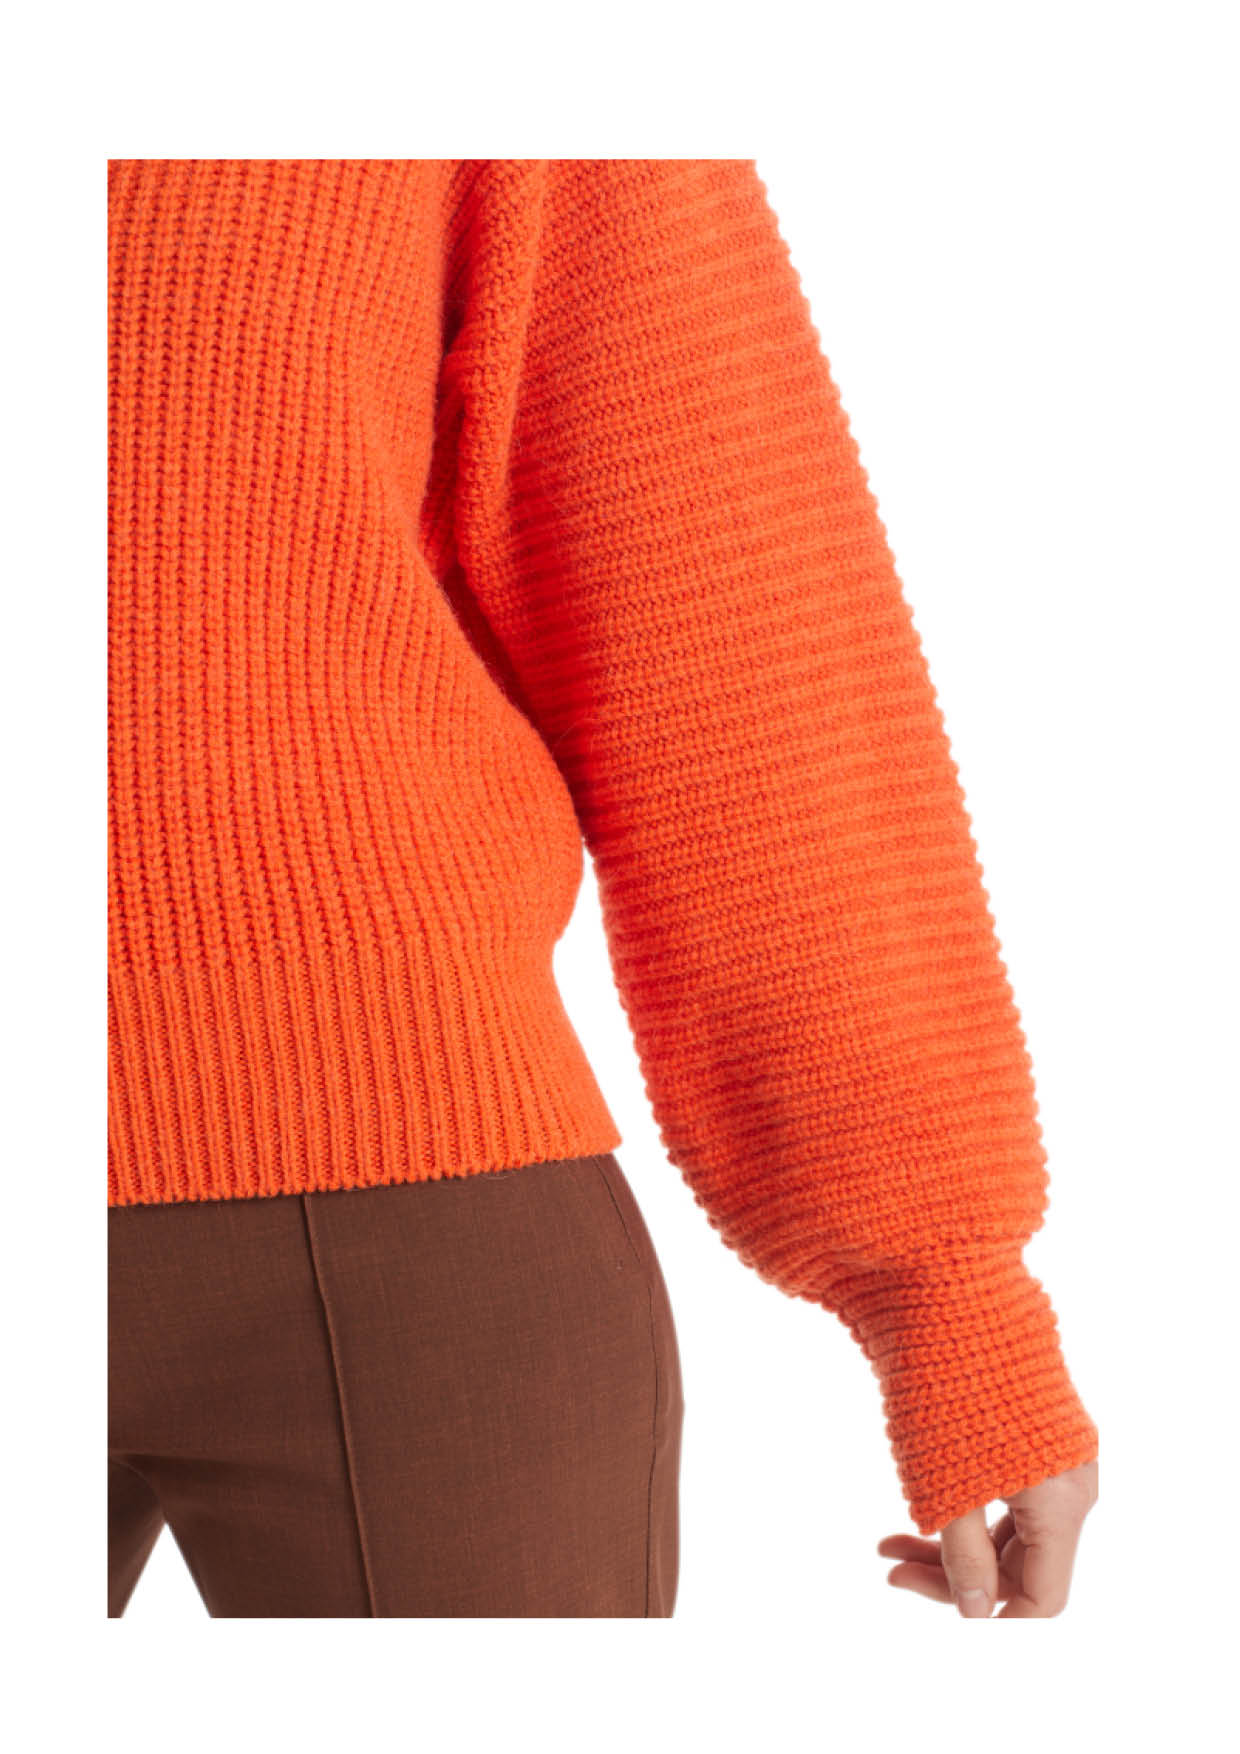 Perlfangstrickpullover Knitted in Germany